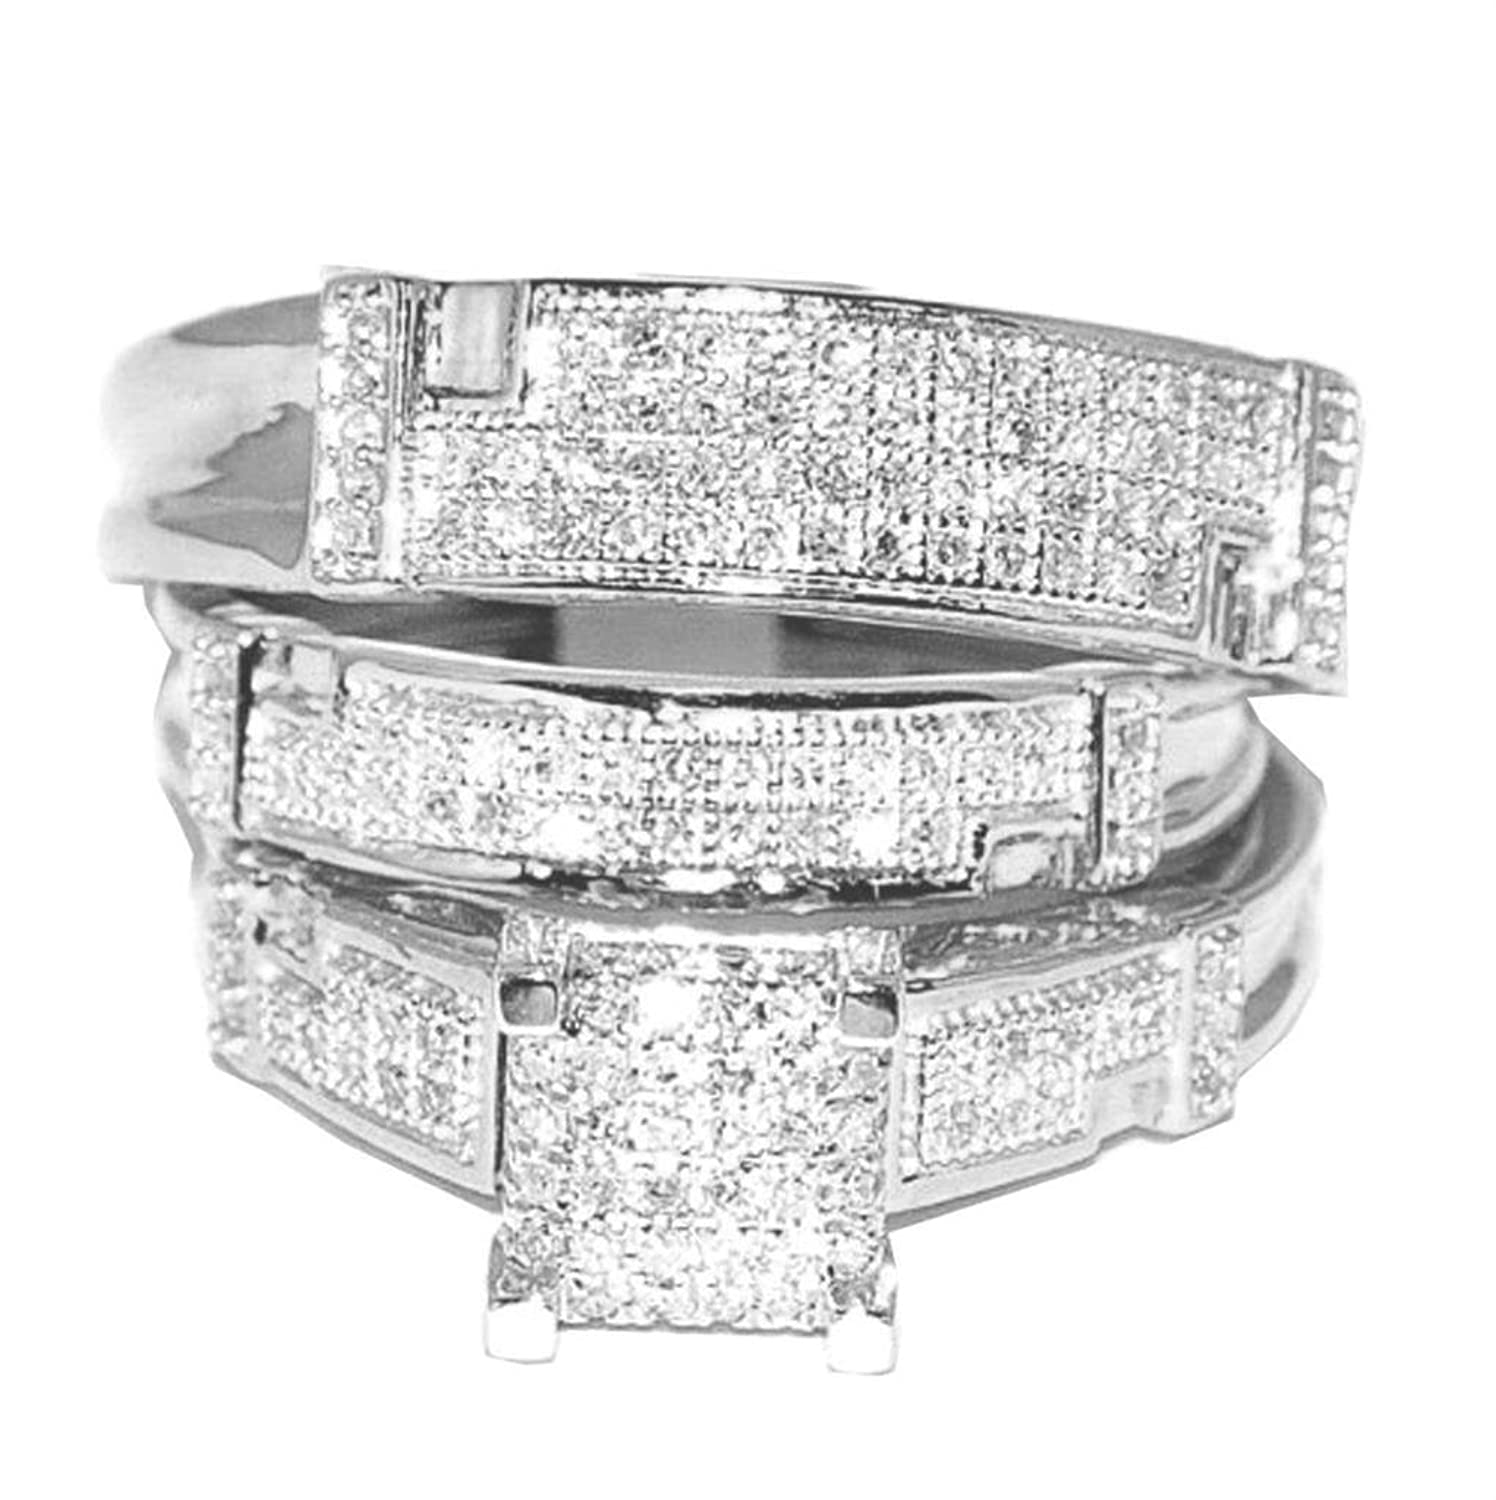 sell your j near canada rings absolutely that ring me diamond way best places place to show design color buy wedding stunning